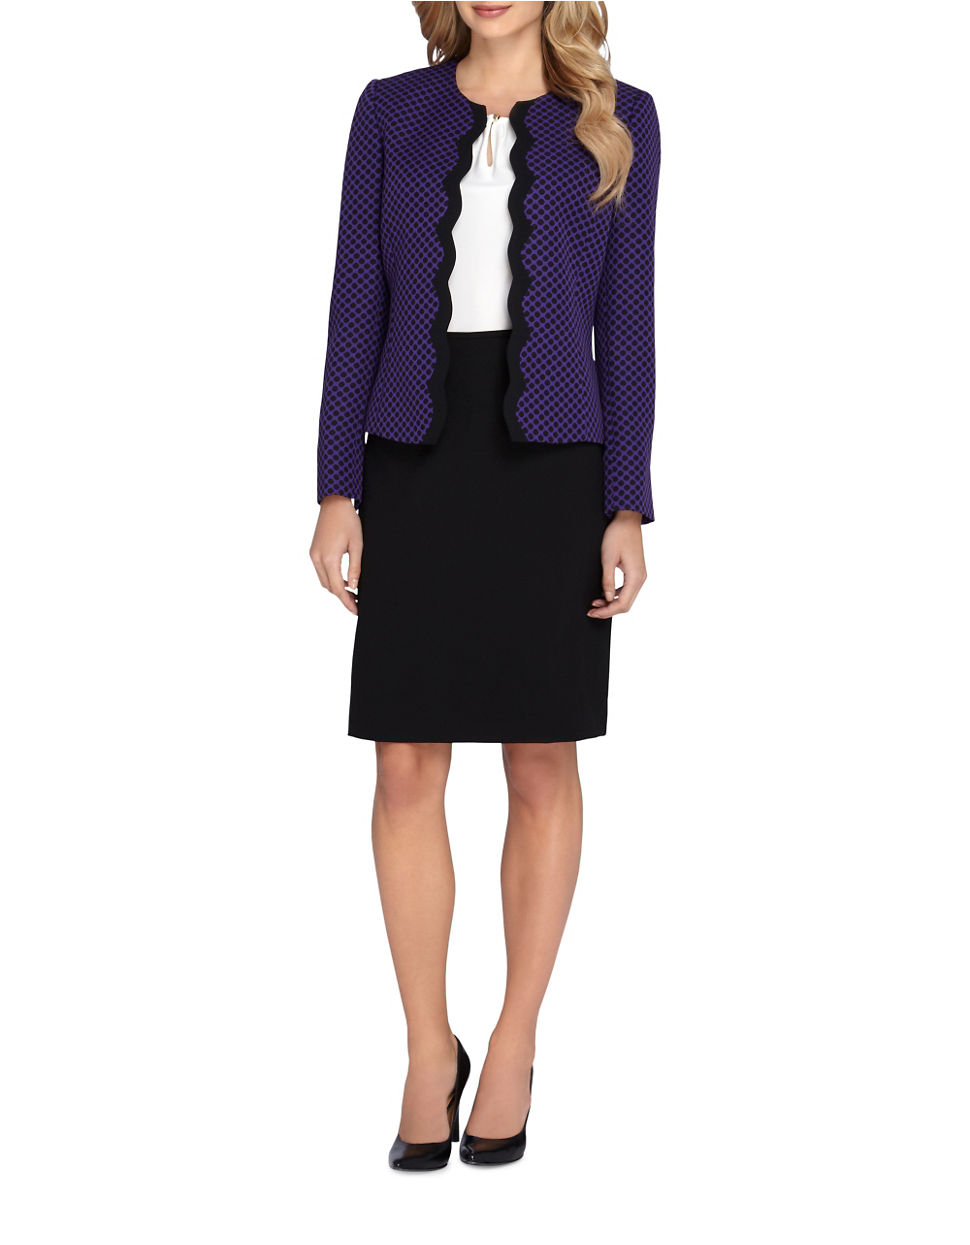 tahari scalloped jacket and pencil skirt suit set in black